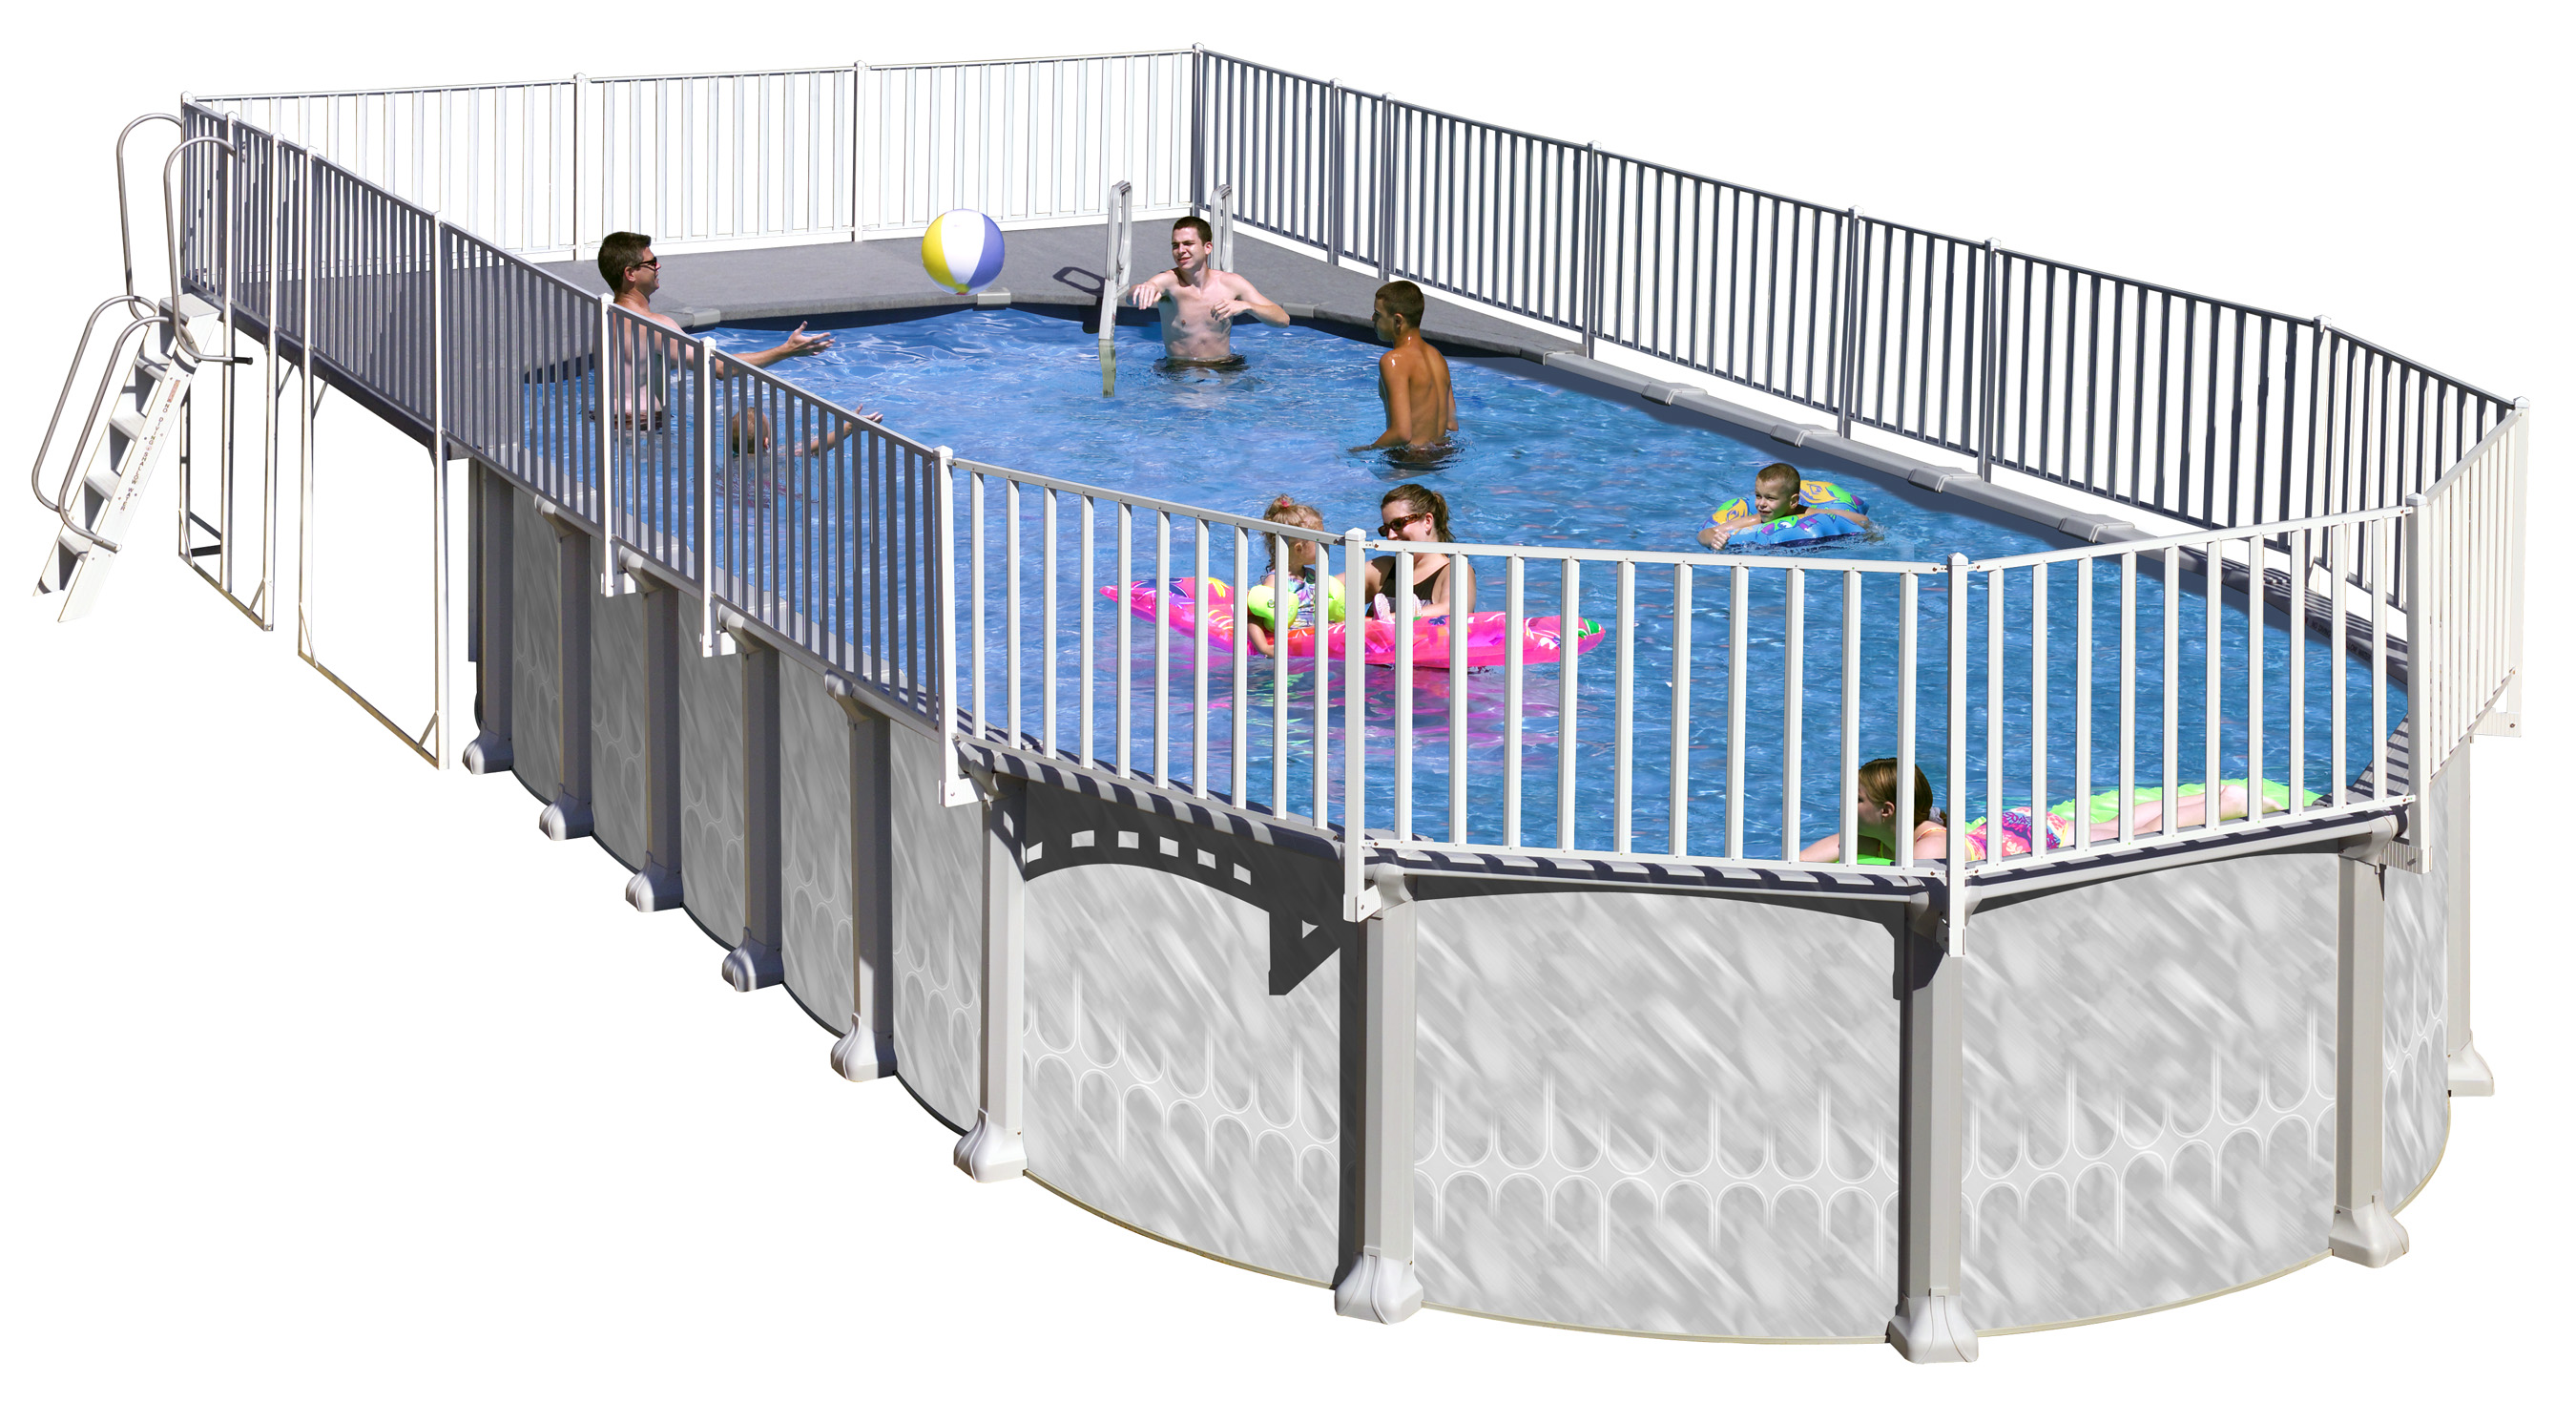 Bestway Pool Abdeckung Oval Jacuzzi Oval Pool